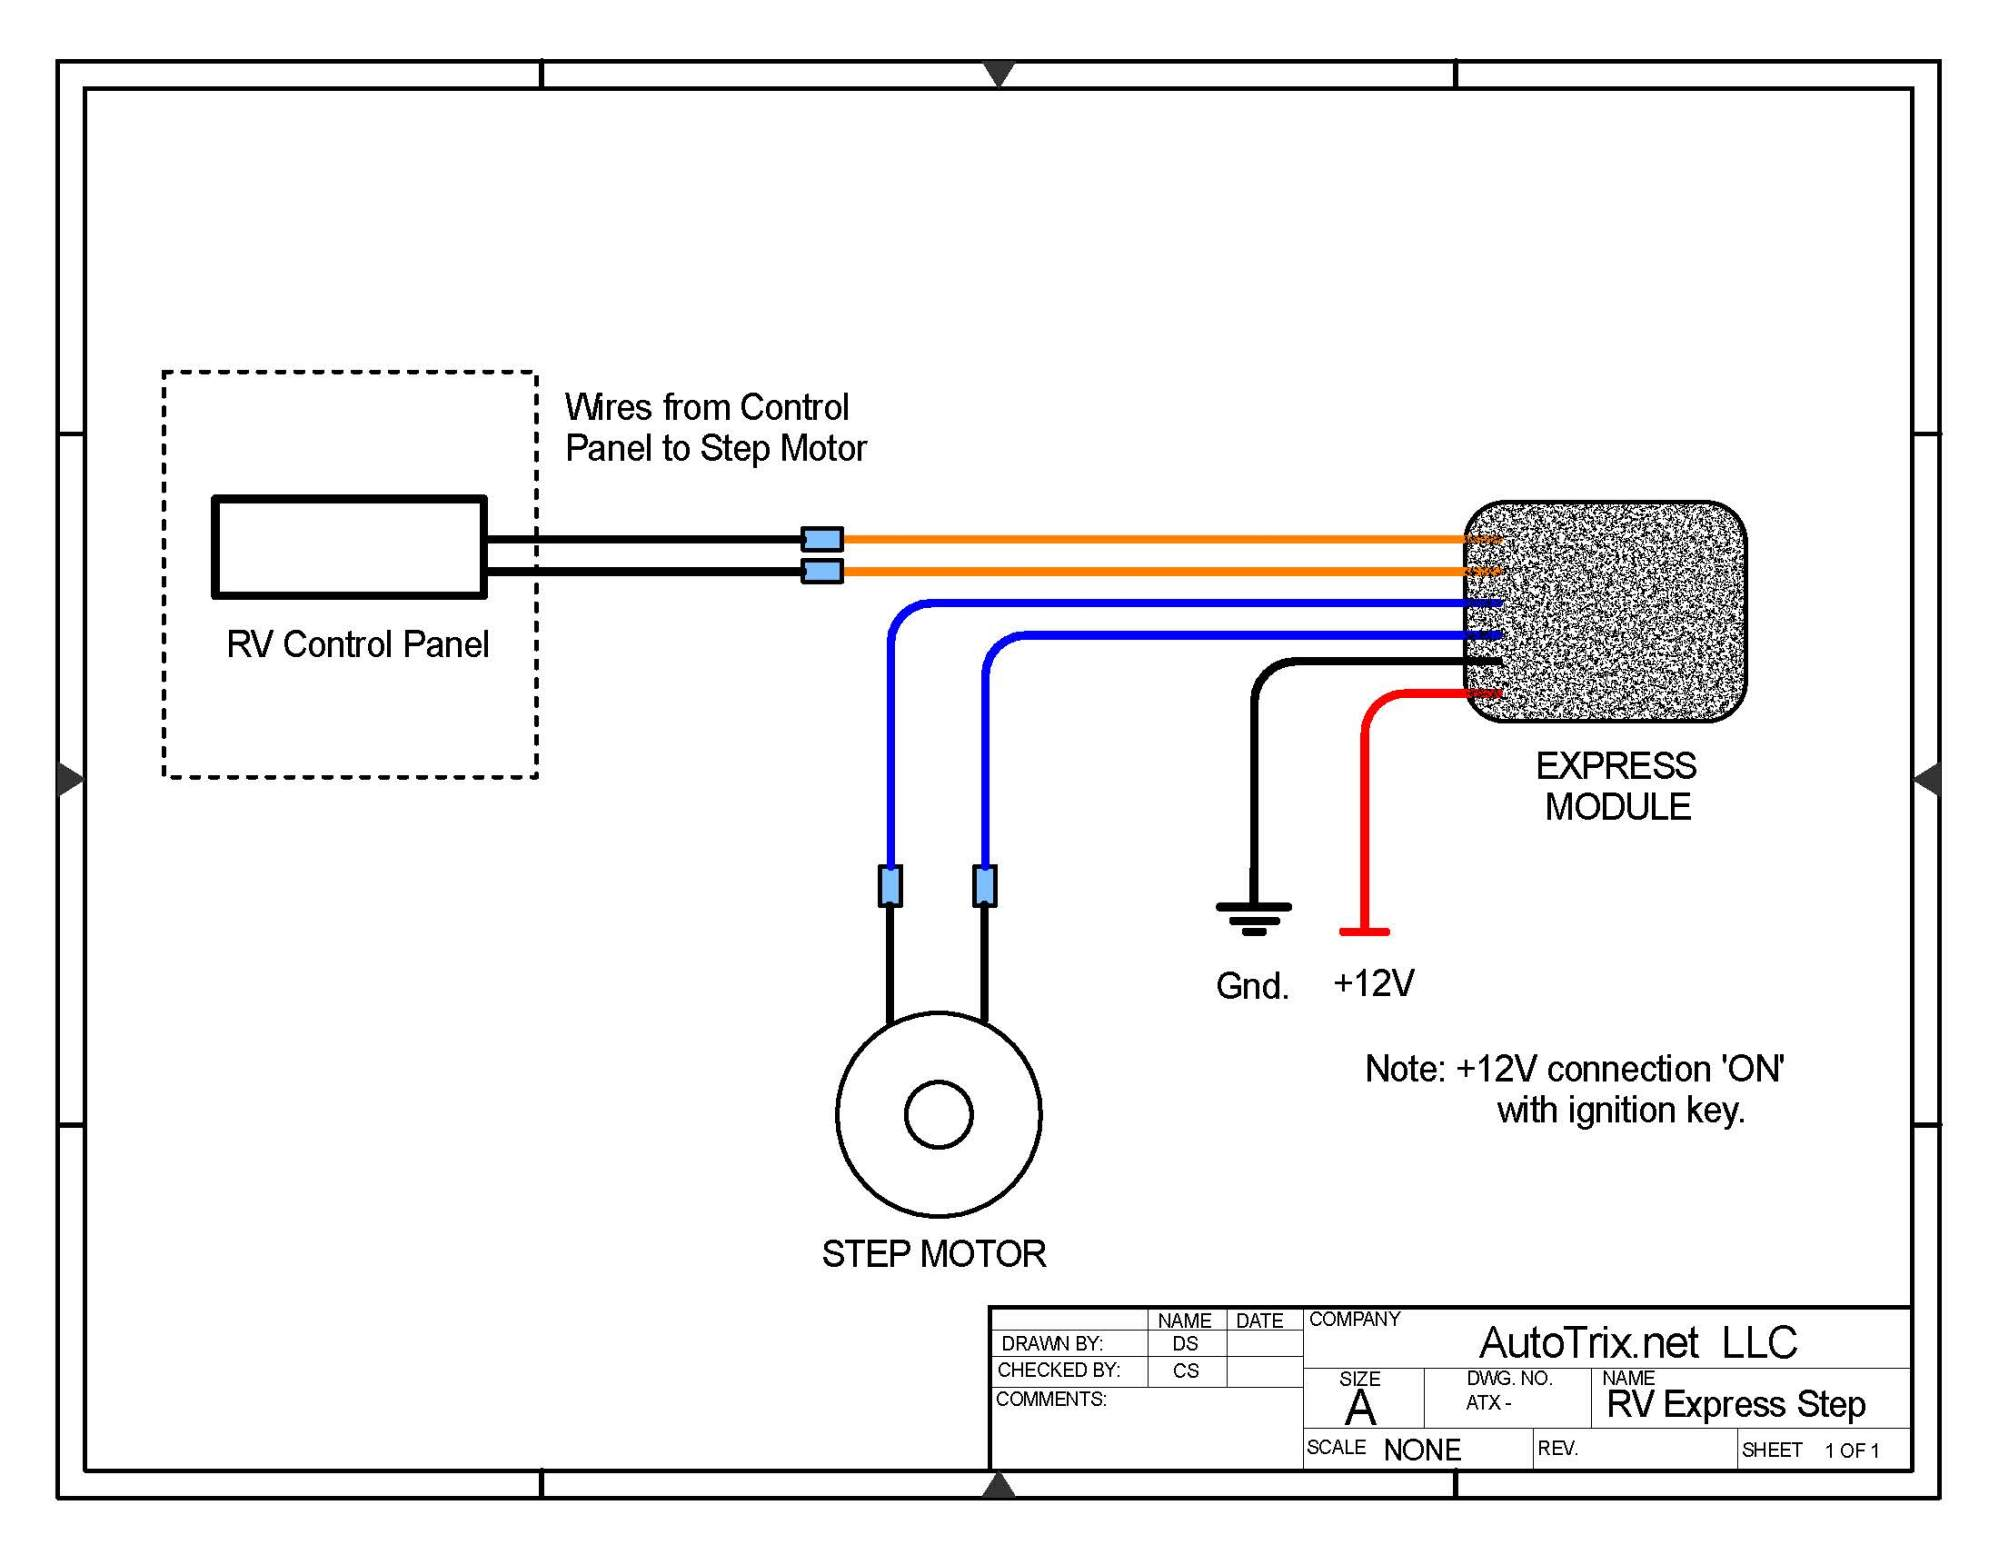 hight resolution of universal rv step cover express module motor install autotrix net rv step wiring diagram 2005 neptune rv step wiring diagram